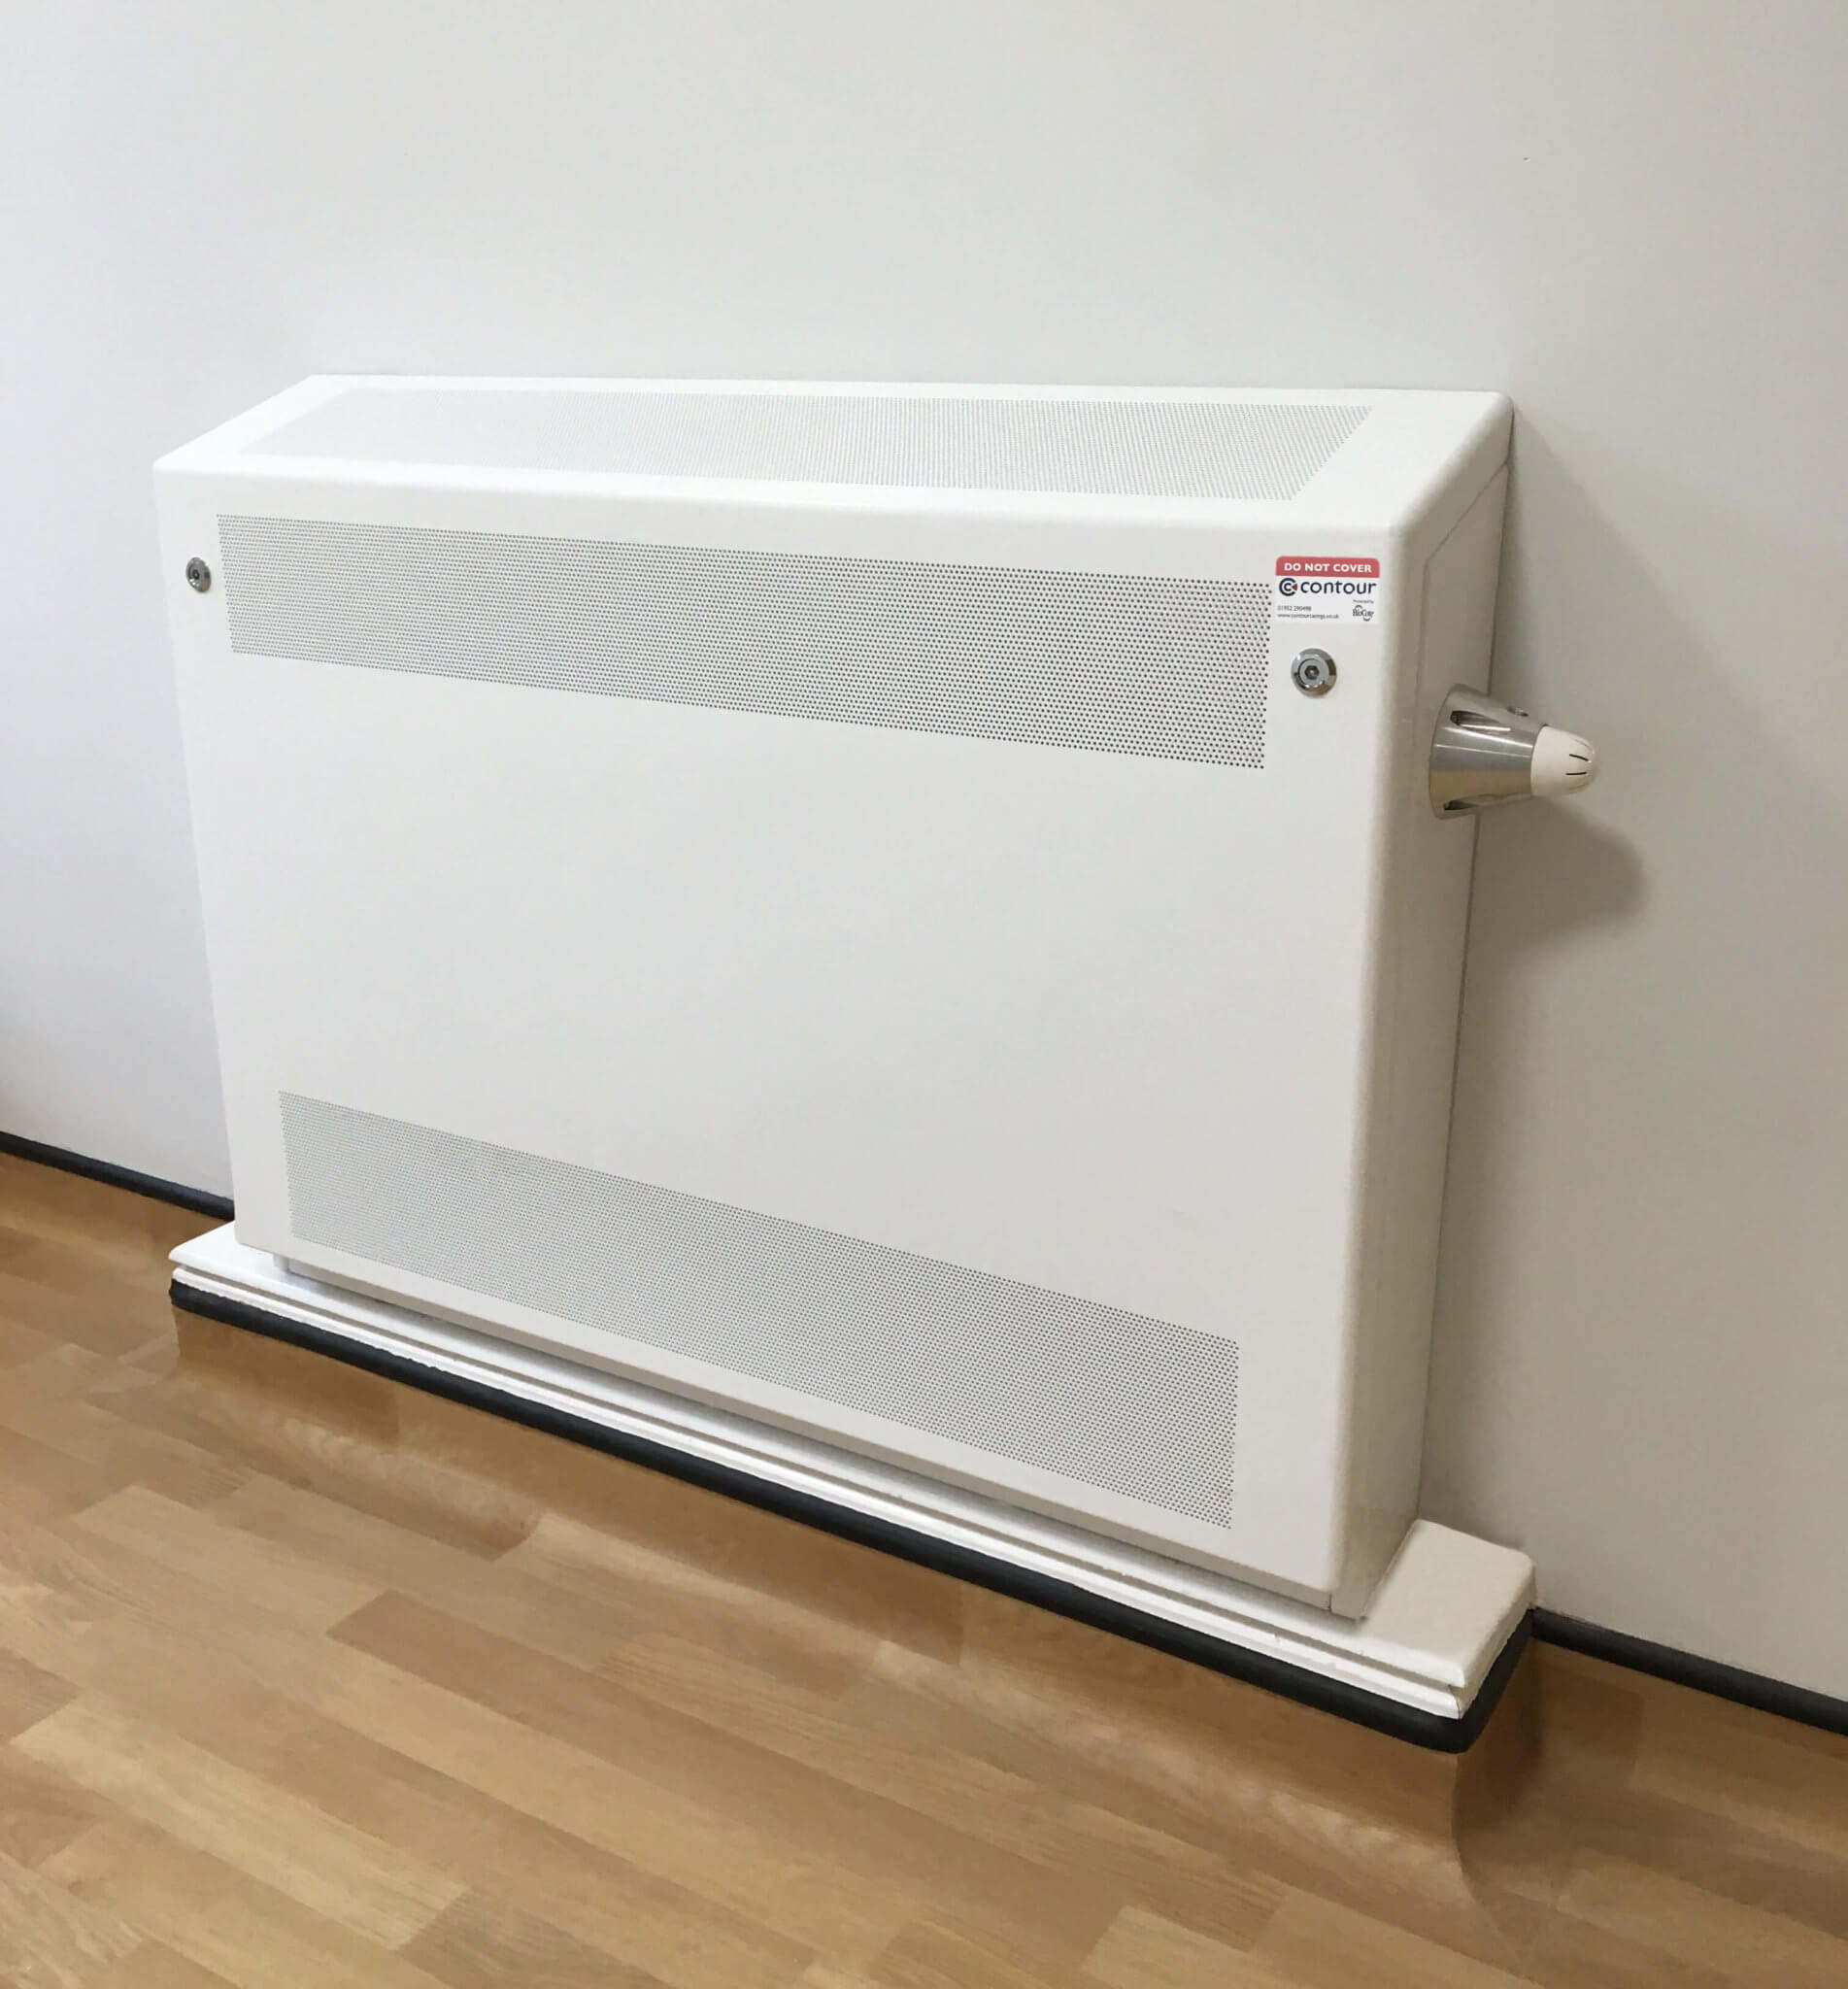 Anti Ligature LST Radiators From Contour | LST Radiator Specialists For Mental Health